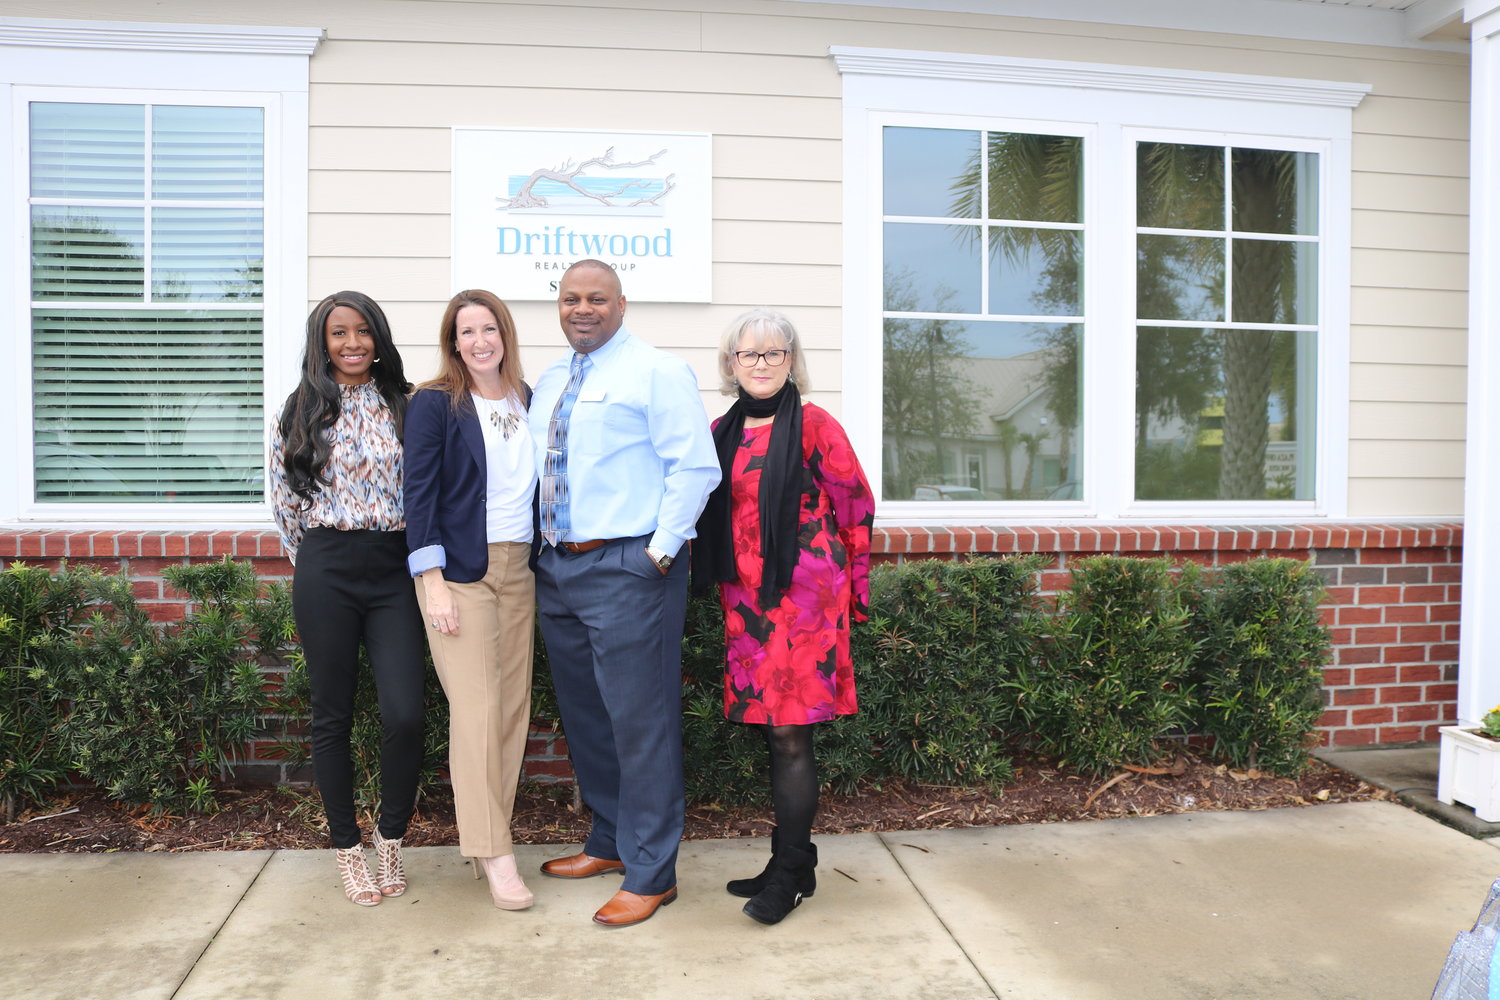 The Driftwood Realty Group team stands outside the business's offices. Pictured from left are marketing coordinator Tyra Key, business owners Kristin and Quinton Doakes, and transaction coordinator Lane Graham.